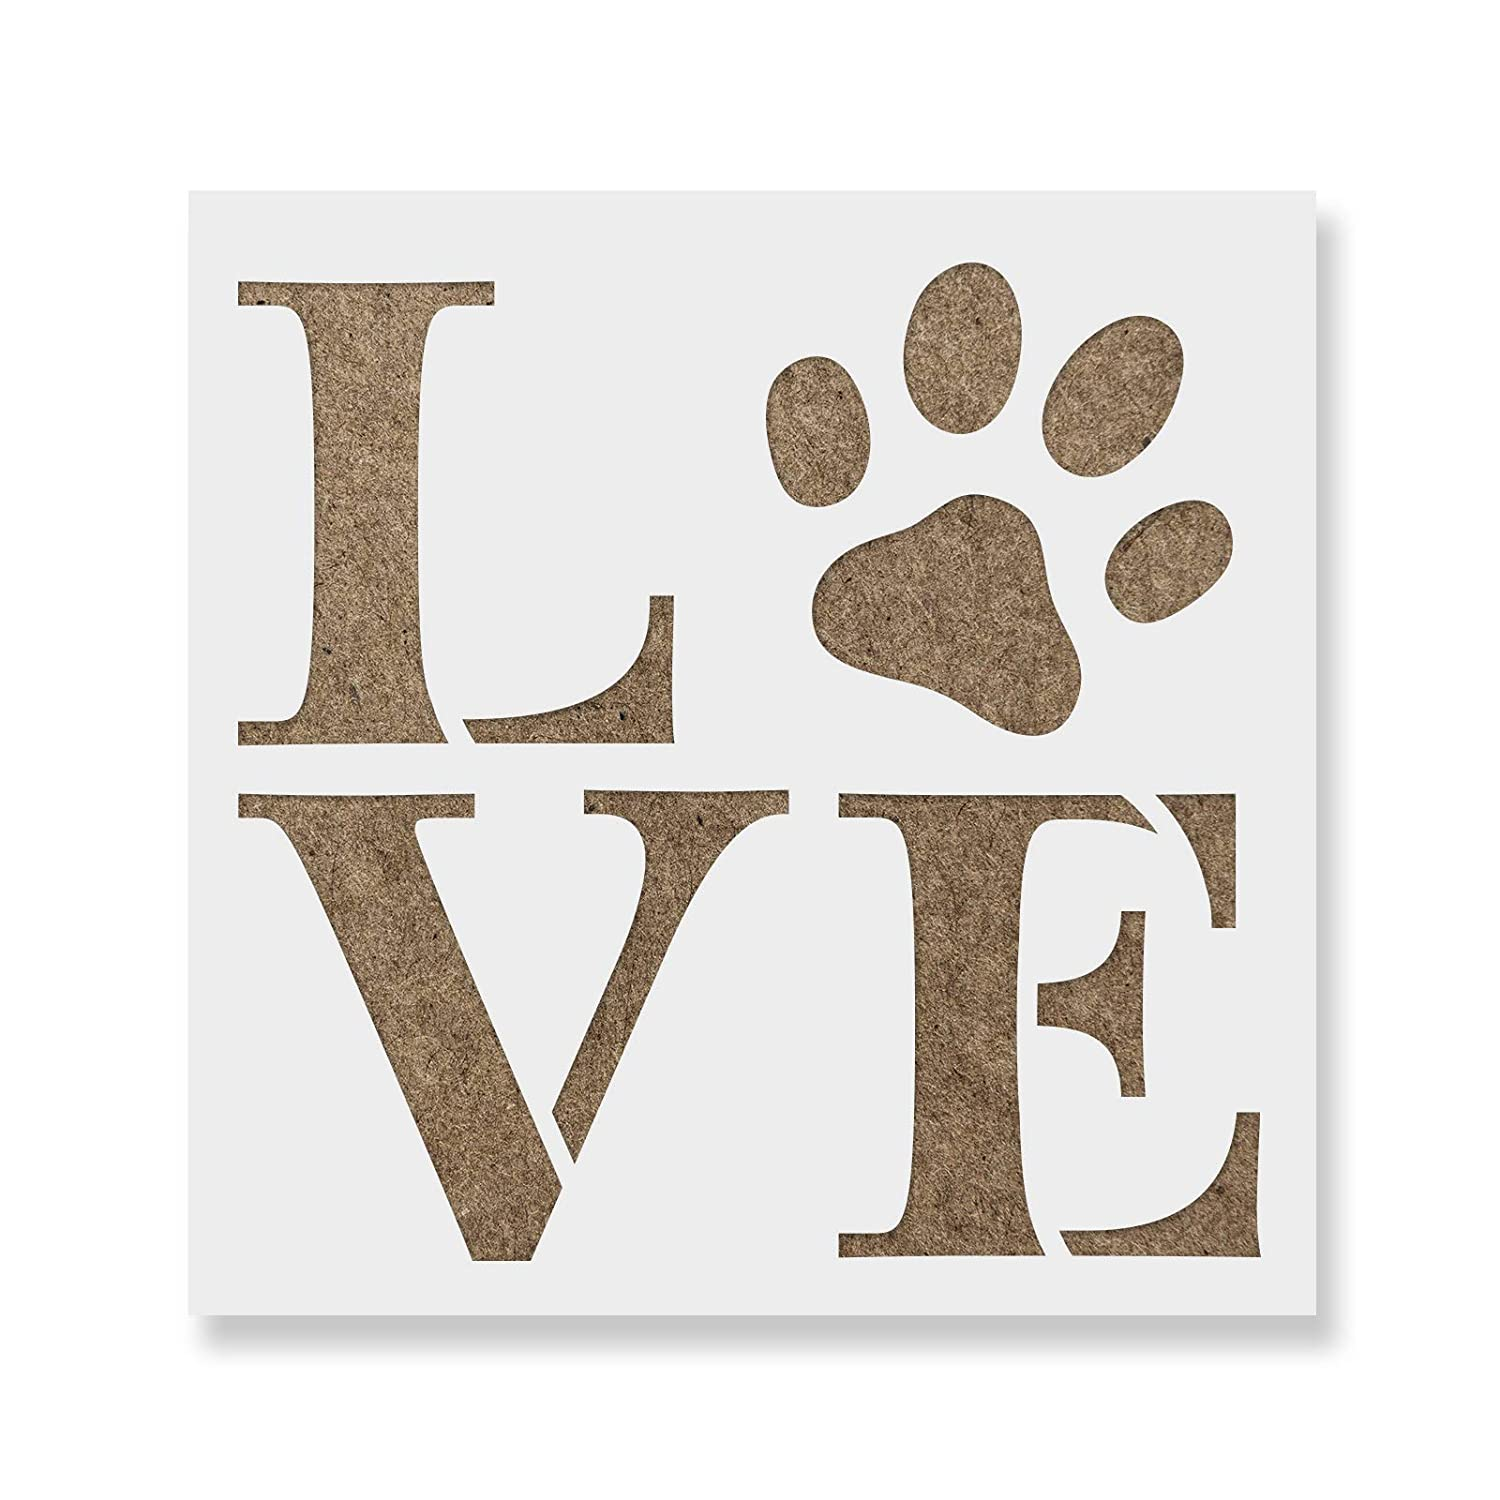 Love Pet Stencil Template for Walls and Crafts - Reusable Stencils for Painting in Small & Large Sizes Stencil Revolution